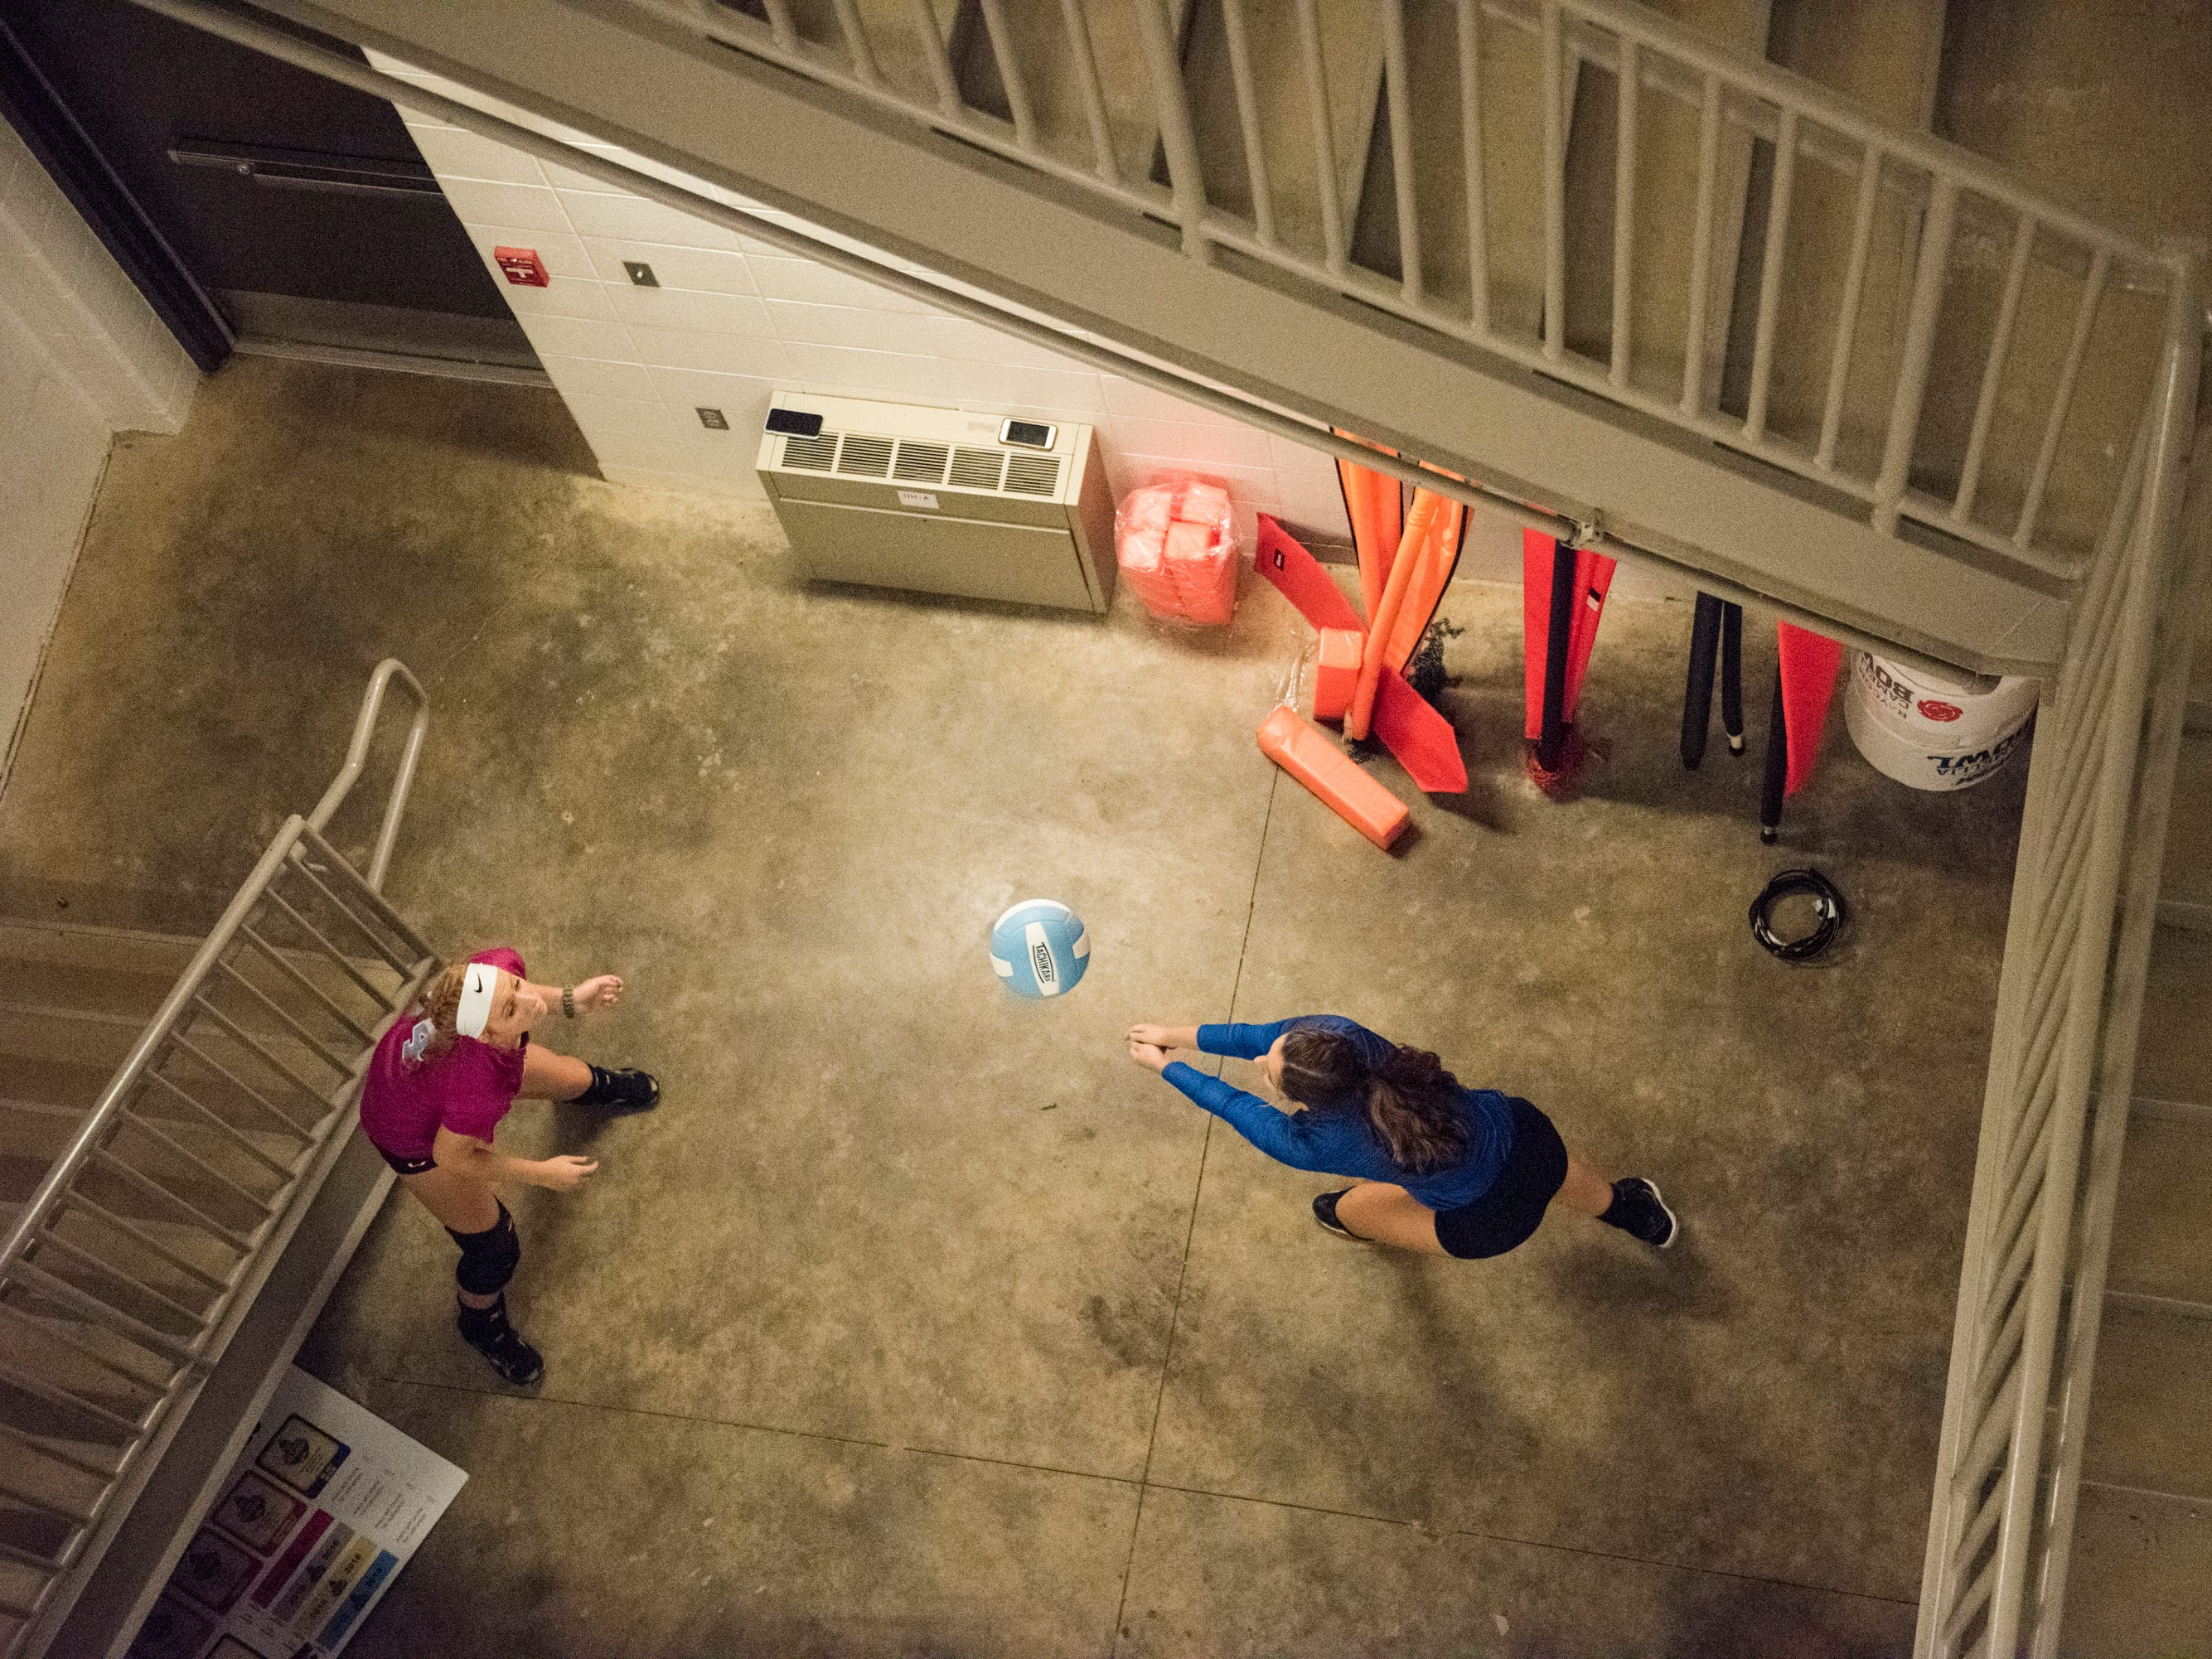 Houston Academy's Bailey Dykes, left, and Caley Caldwell practice in the stairwell during the Super Regionals at the Multiplex at Cramton Bowl in Montgomery, Ala., on Thursday, Oct. 25, 2018.